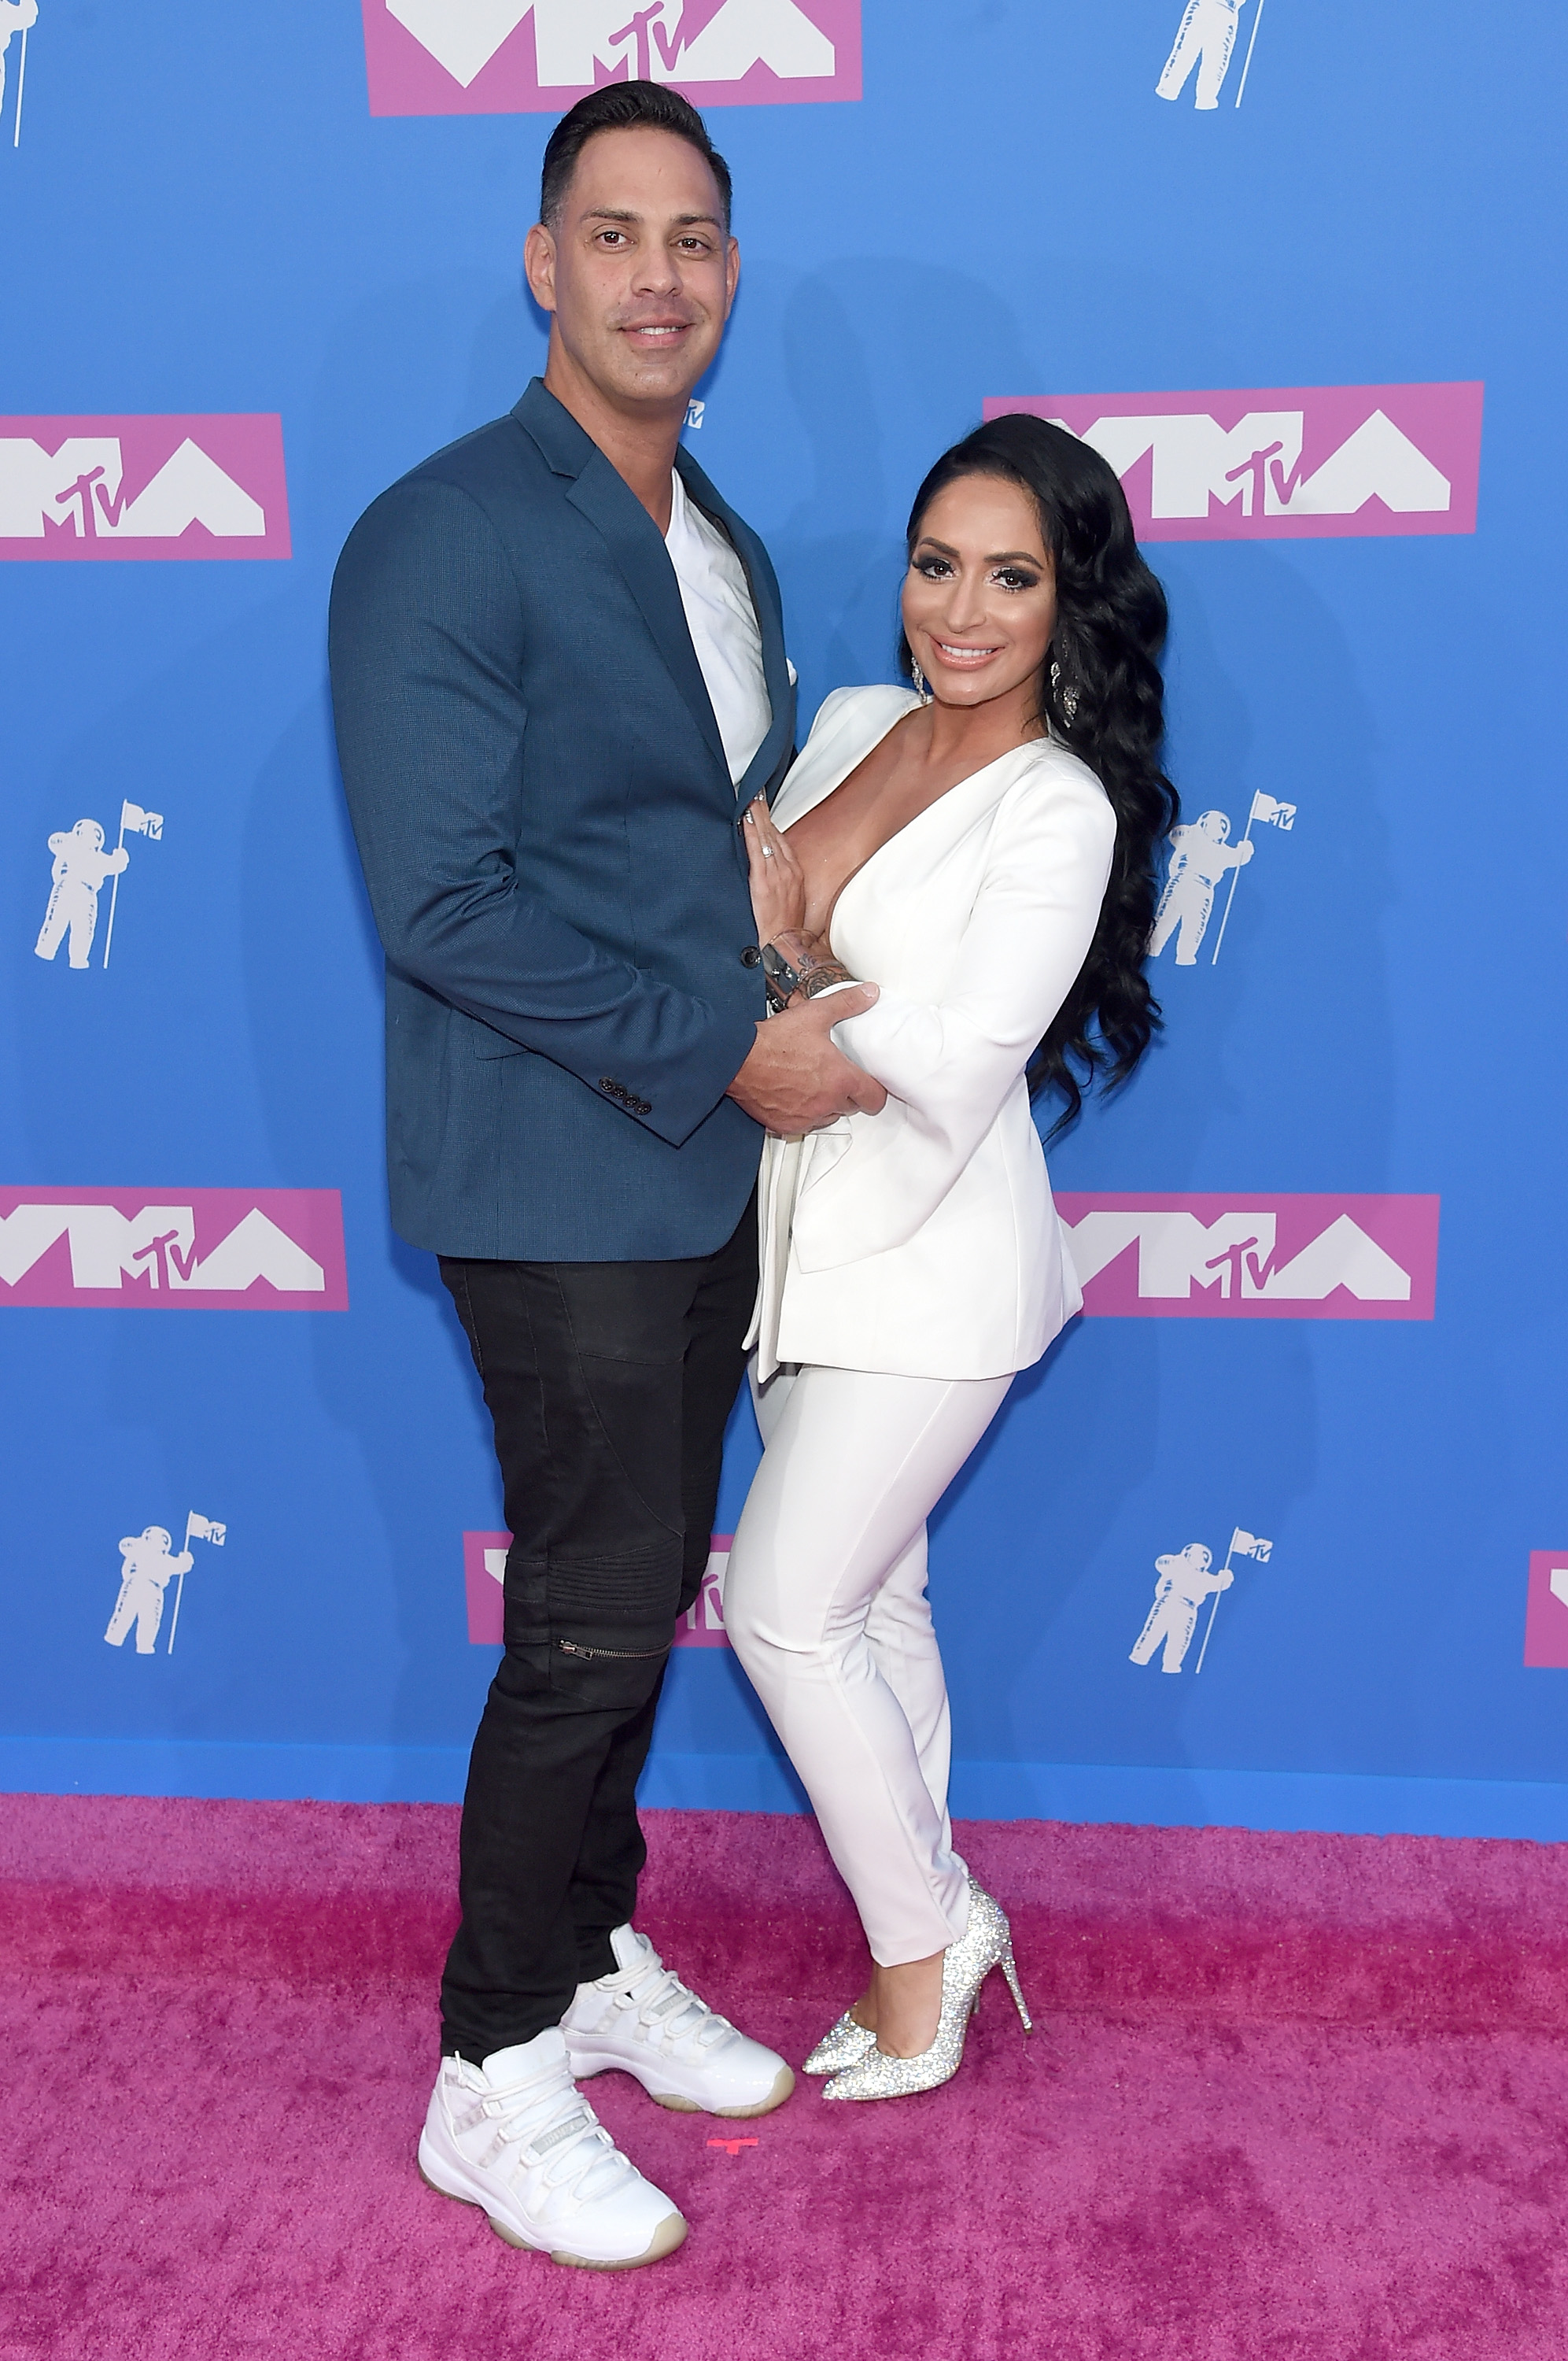 Angelina Jersey Shore Nude angelina pivarnick forgets fiance and gets it on with pauly